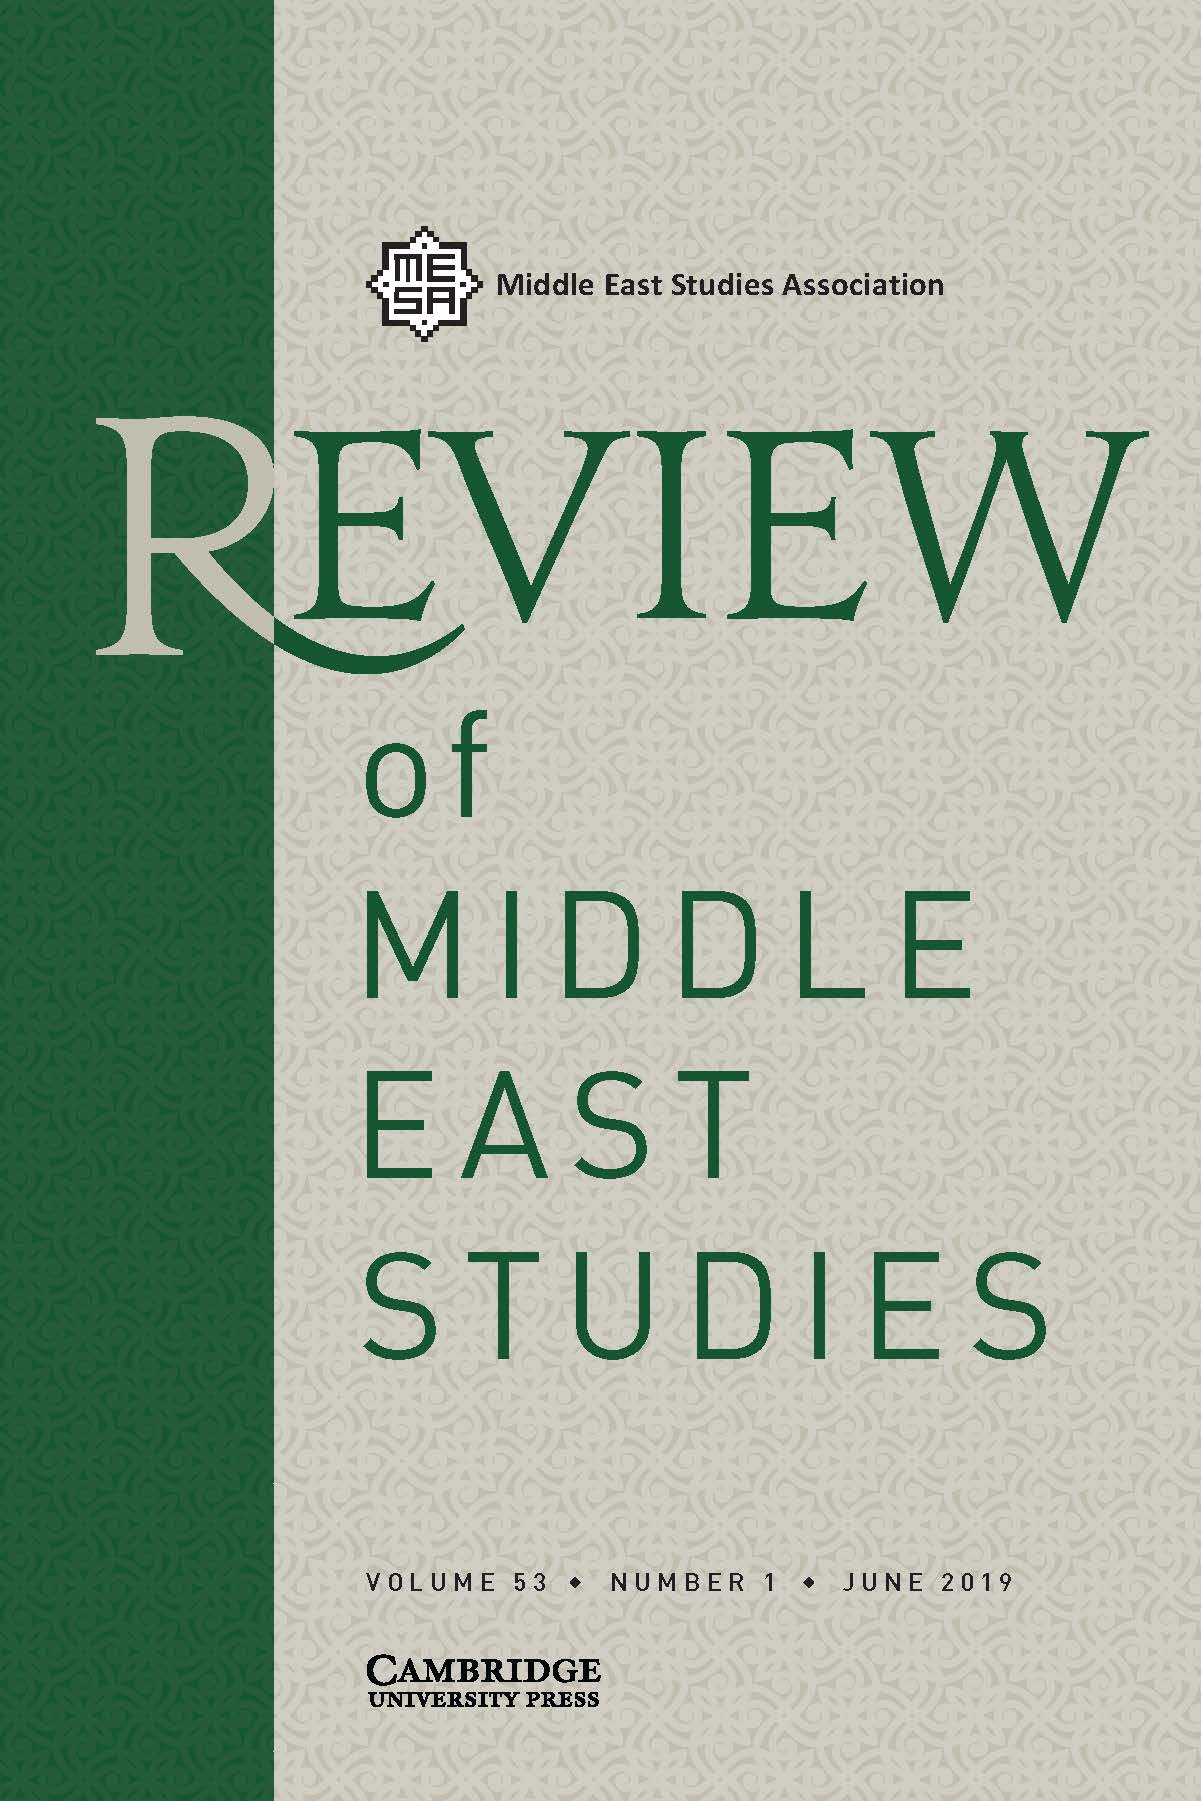 Studies Send Mixed Messages On >> Review Of Middle East Studies Latest Issue Cambridge Core